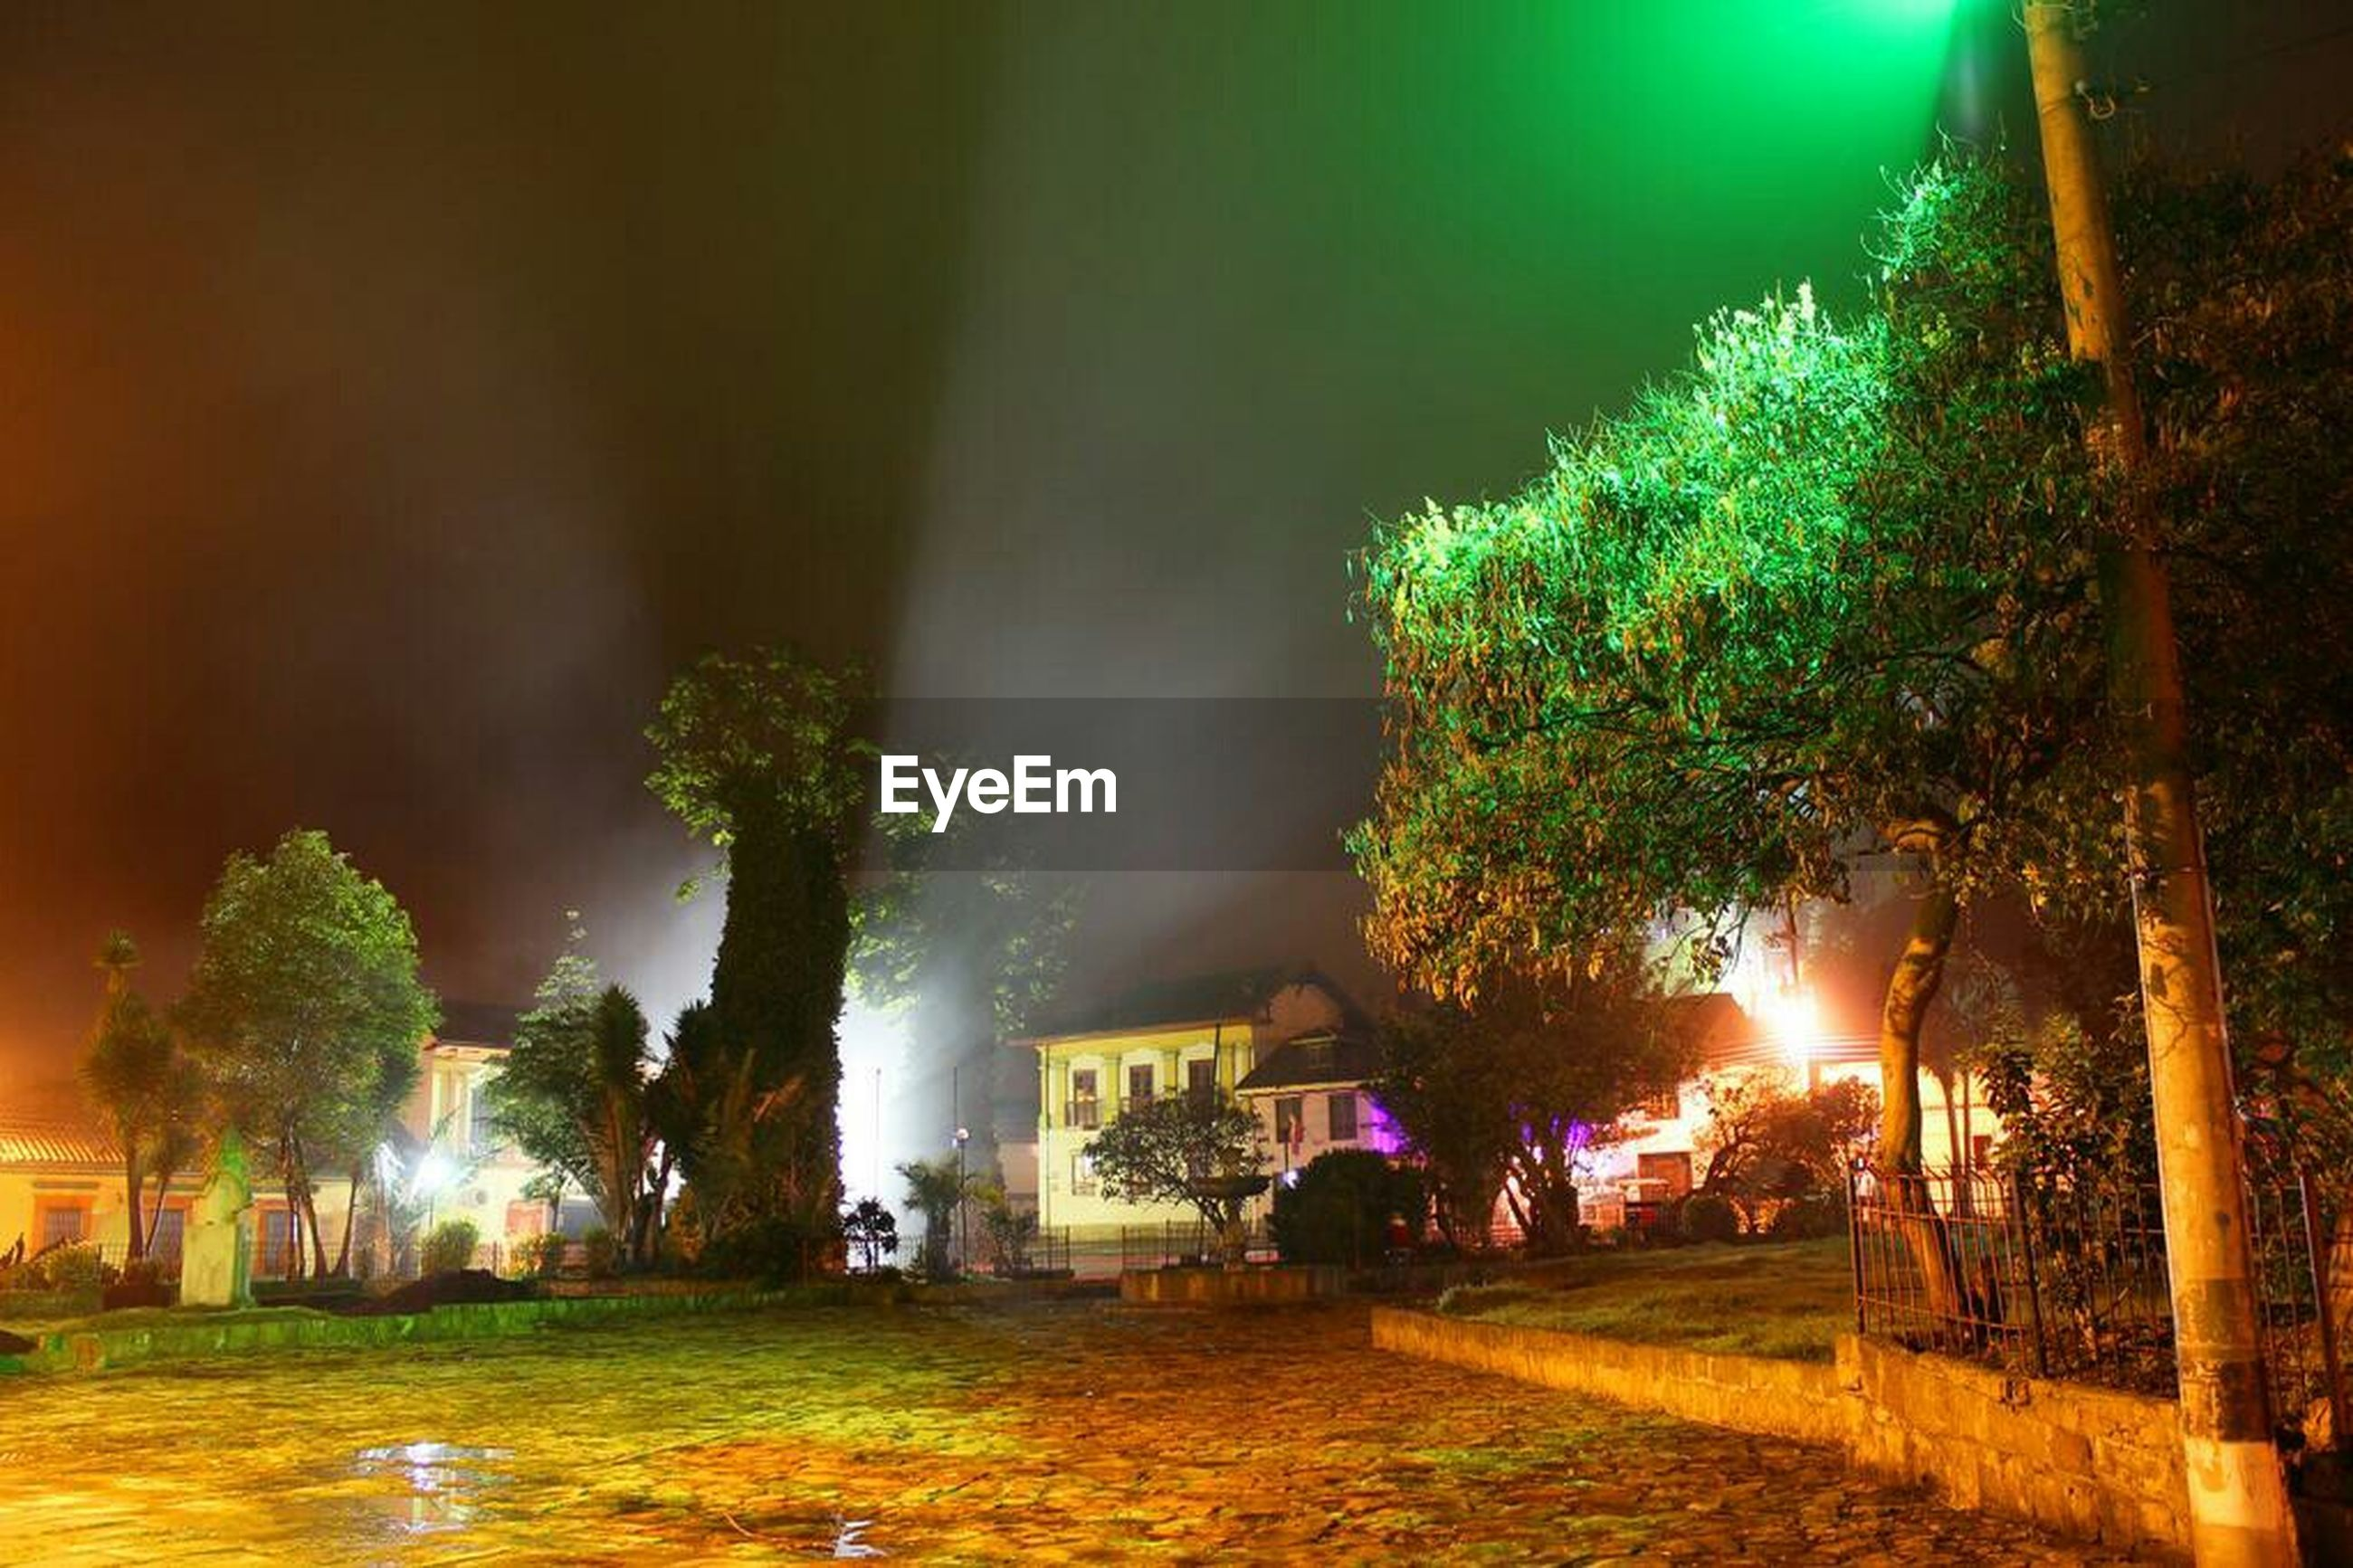 illuminated, night, building exterior, built structure, tree, architecture, grass, street light, lens flare, lighting equipment, outdoors, house, glowing, light - natural phenomenon, growth, park - man made space, incidental people, street, lawn, green color